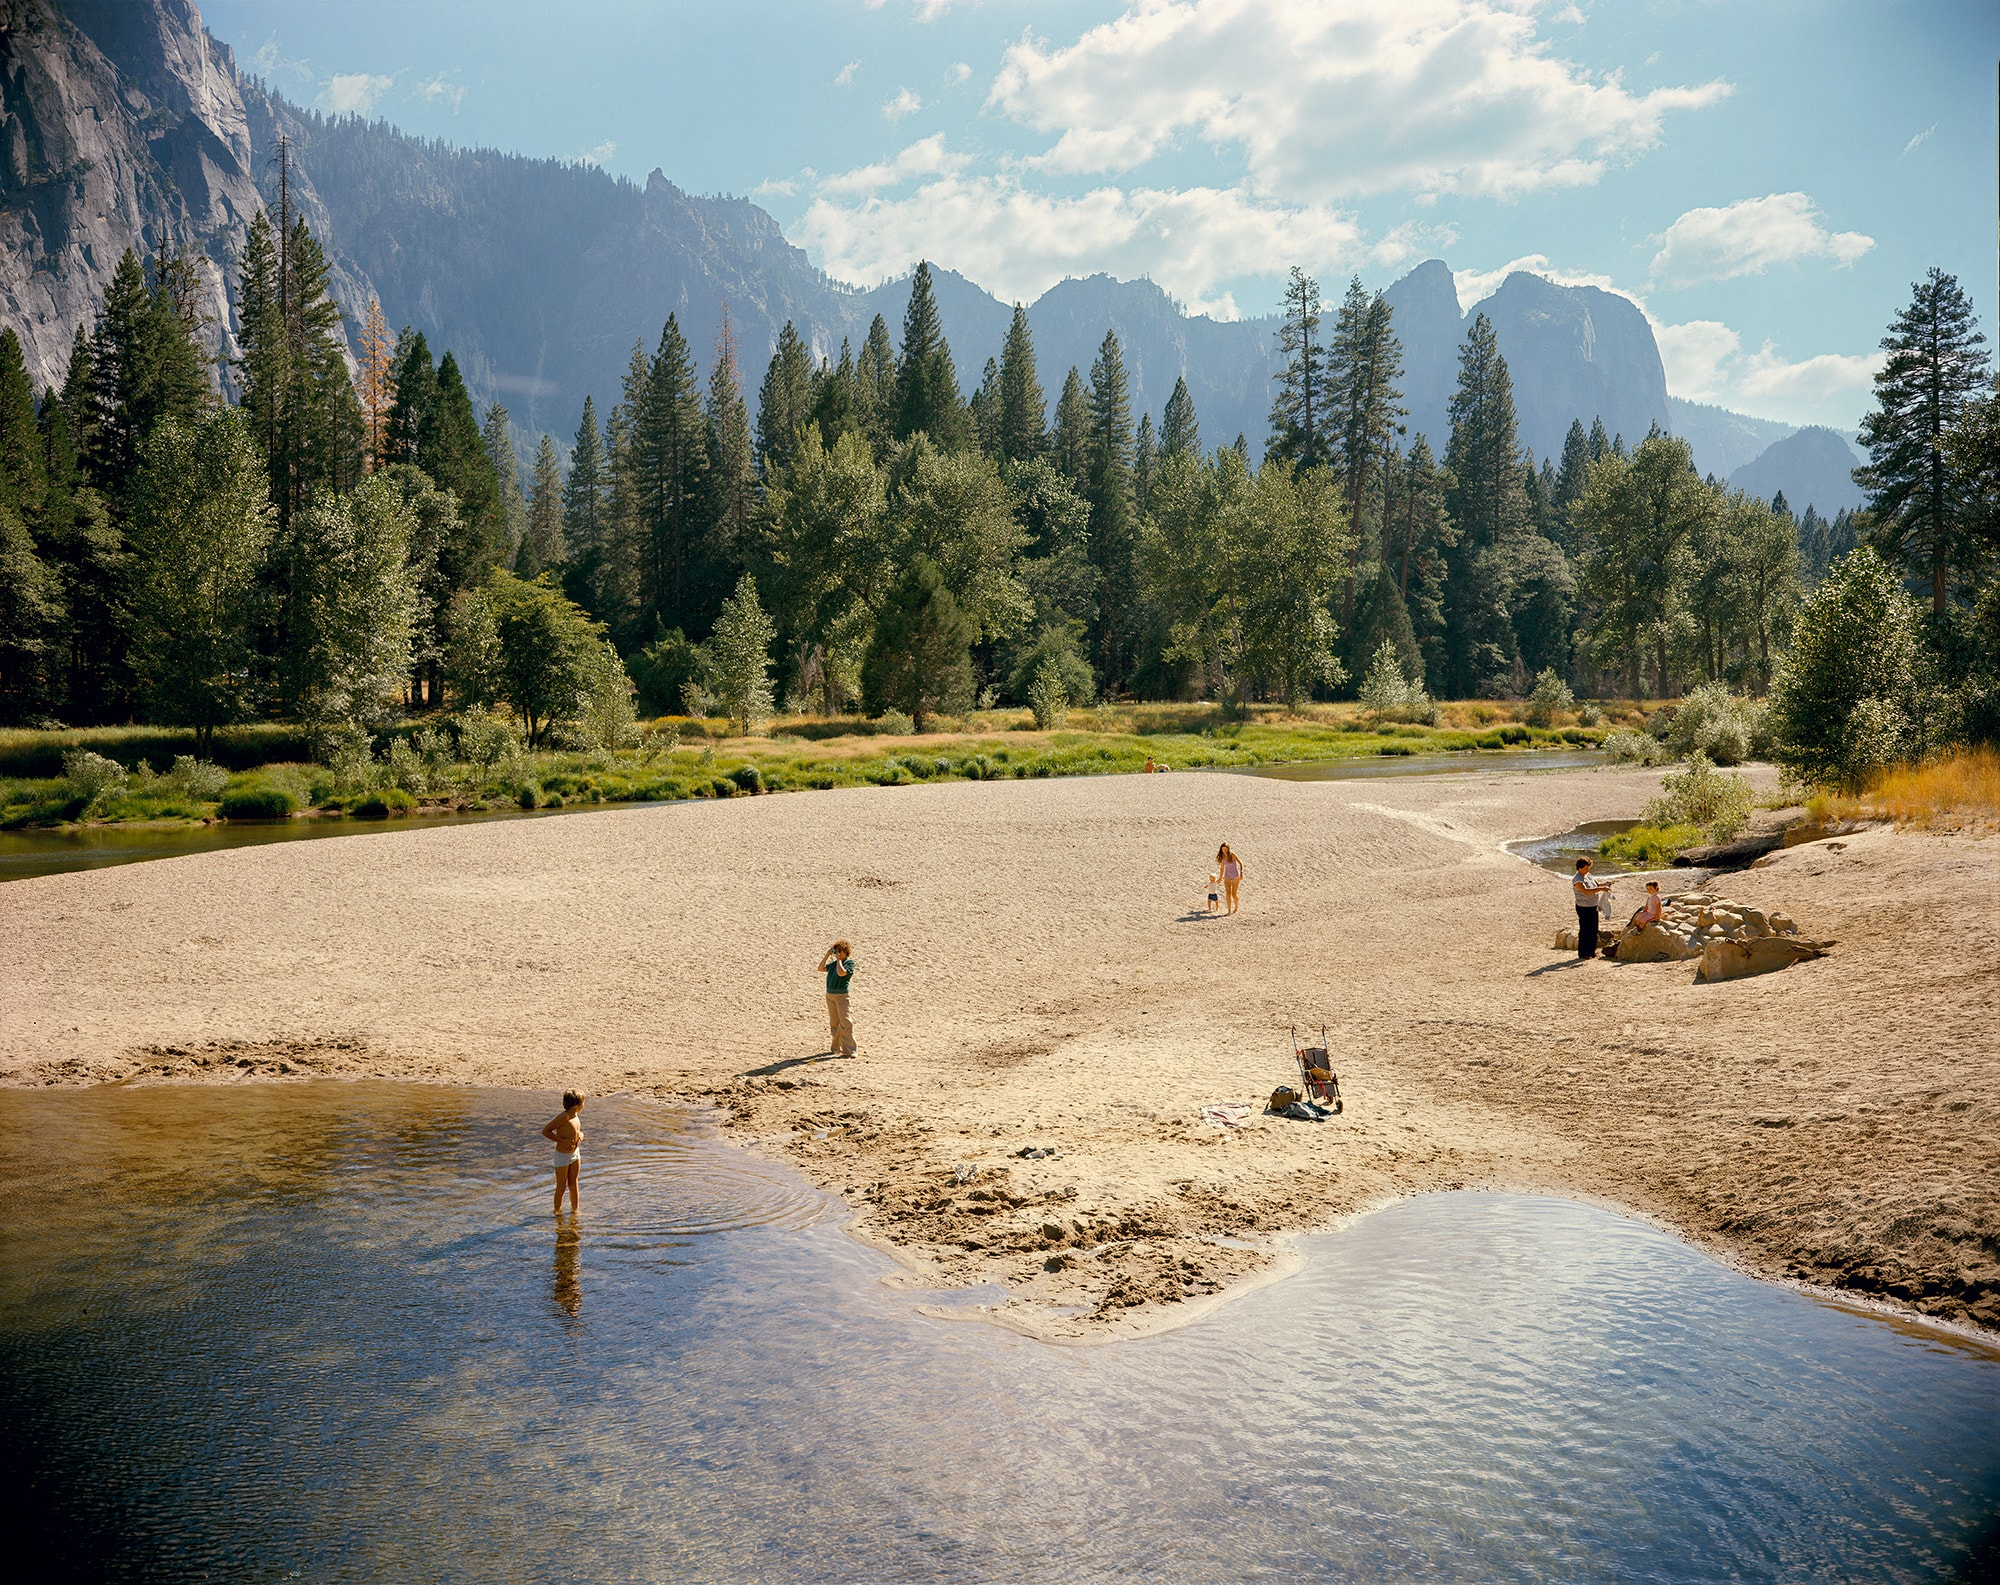 Stephen Shore. Merced River, Yosemite National Park, California, August 13, 1979. 1979. Chromogenic color print, printed 2013, 35 7/8 x 44 15/16″ (91.2 x 114.2 cm). The Museum of Modern Art, New York. Gift of the artist. © 2017 Stephen Shore